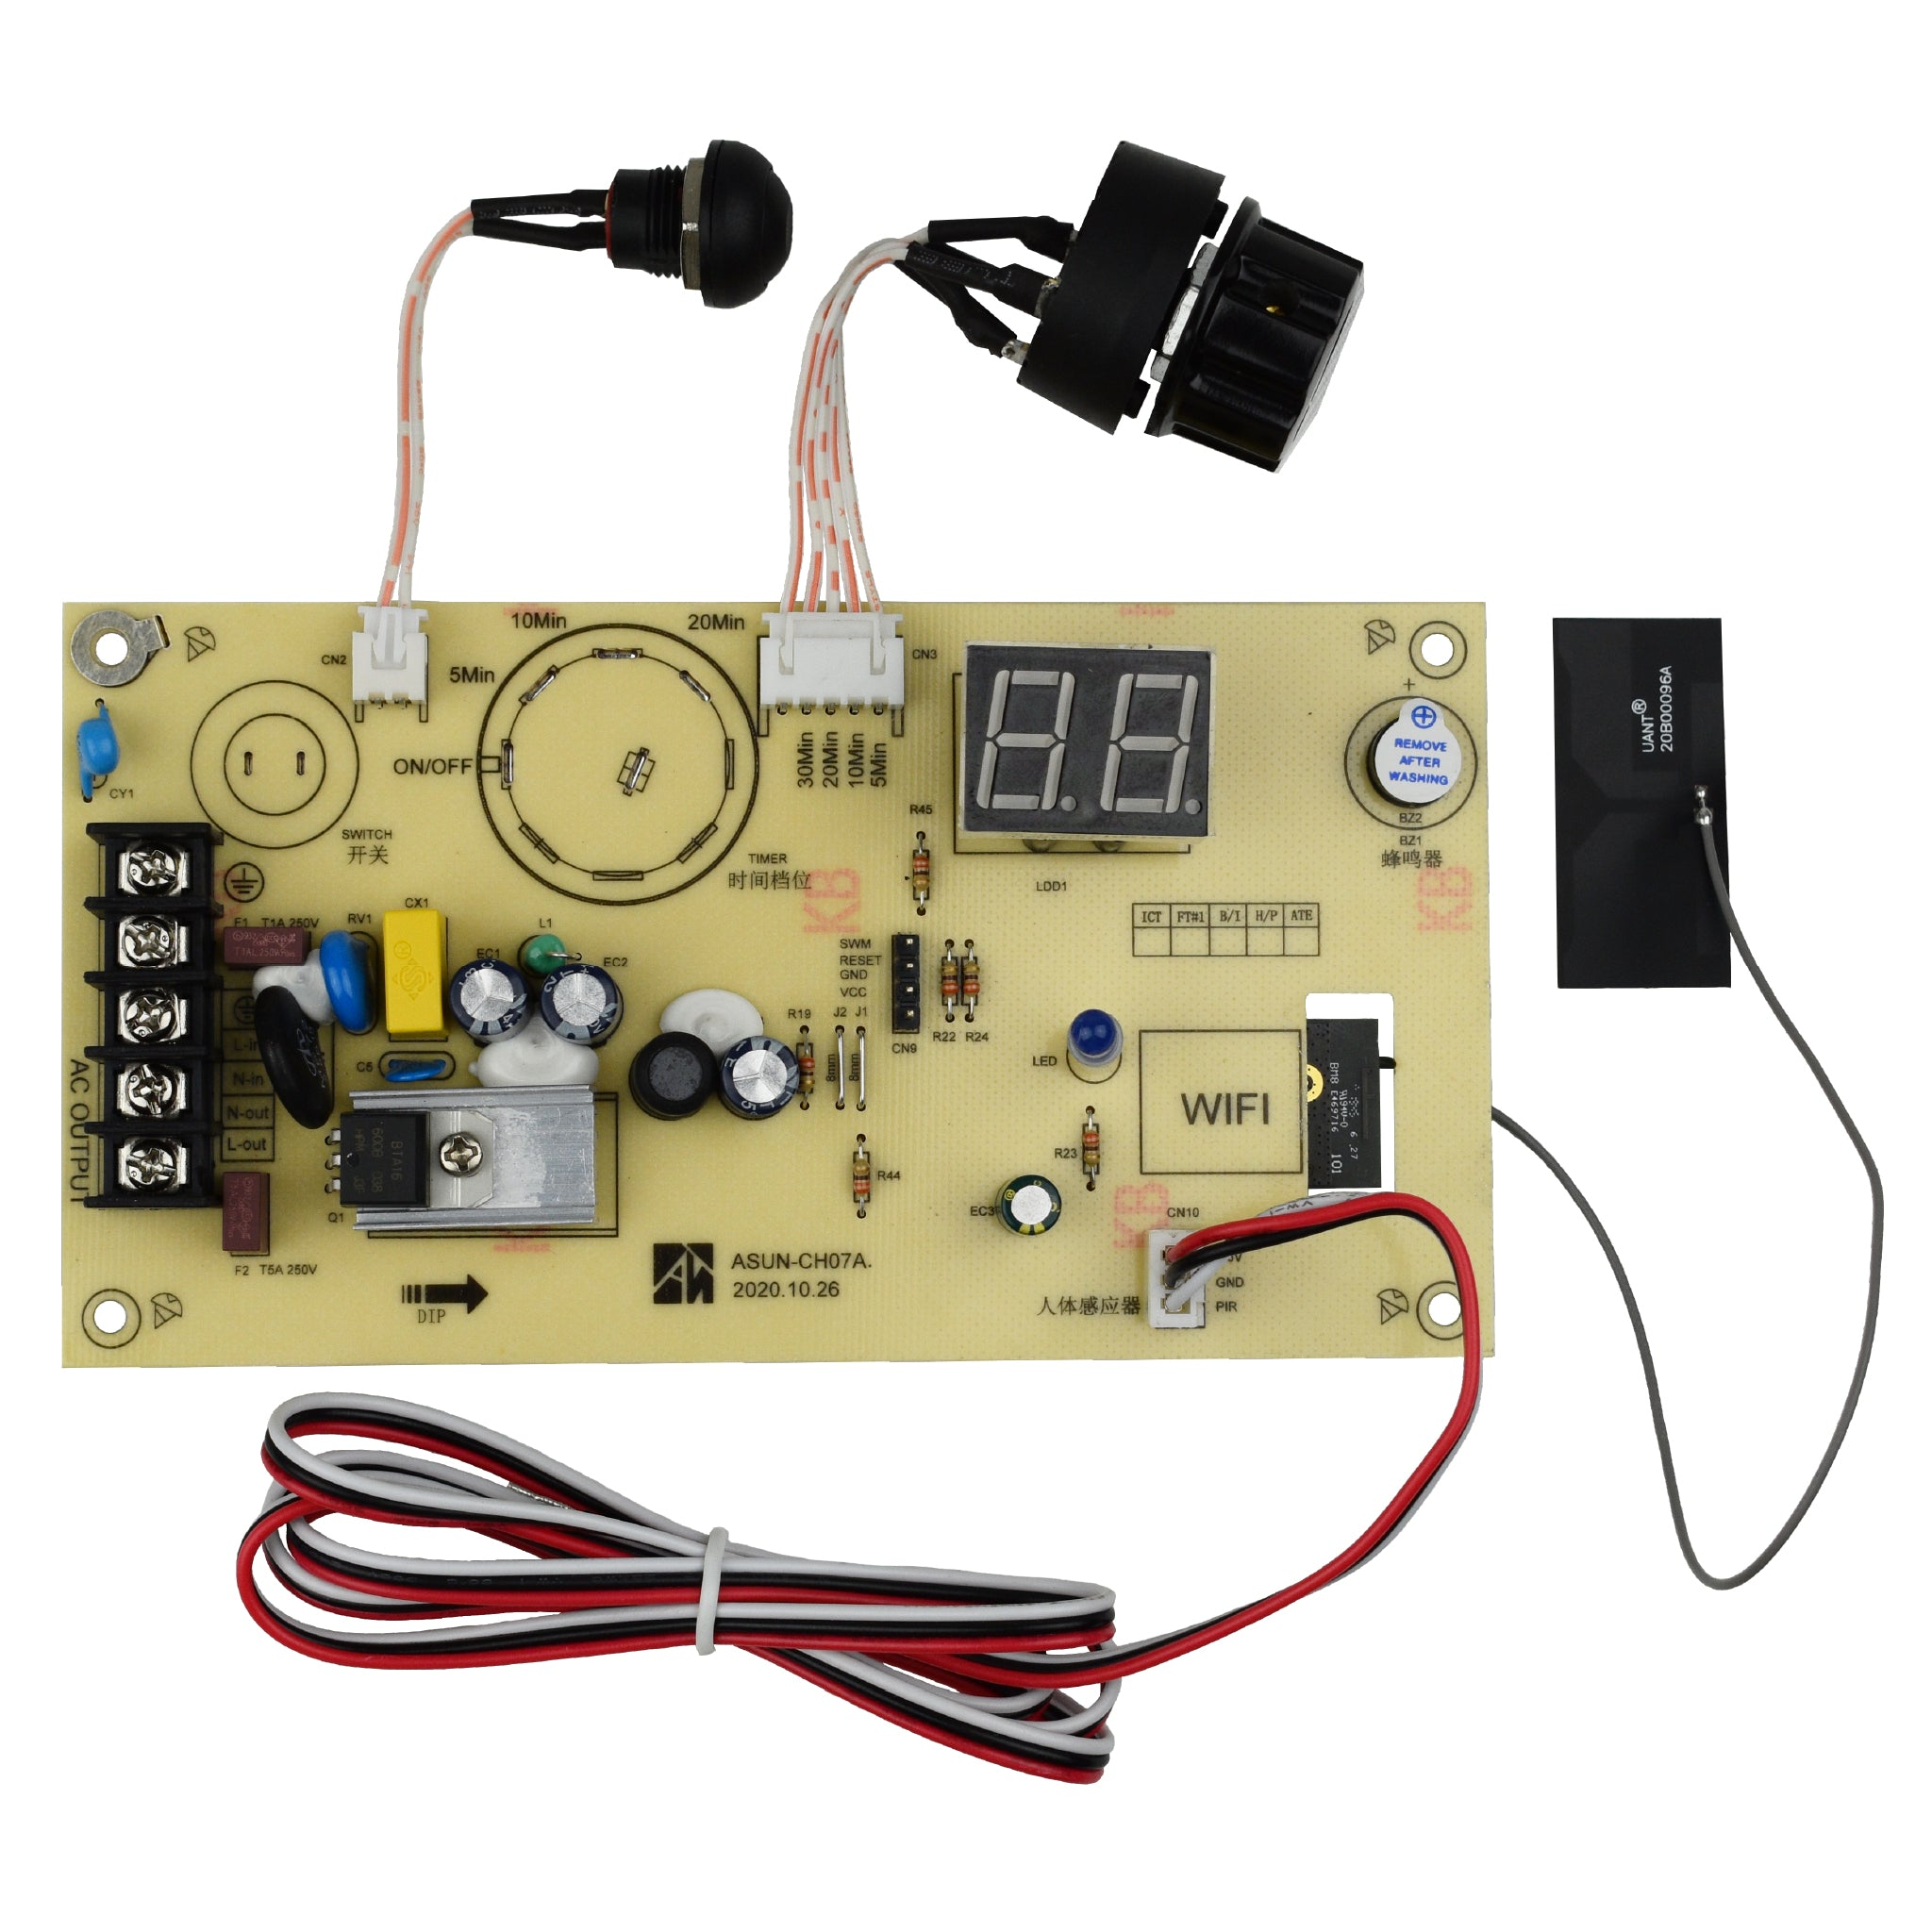 Replacement Control Board for UVC PureLight 360 Smart Sanitizer